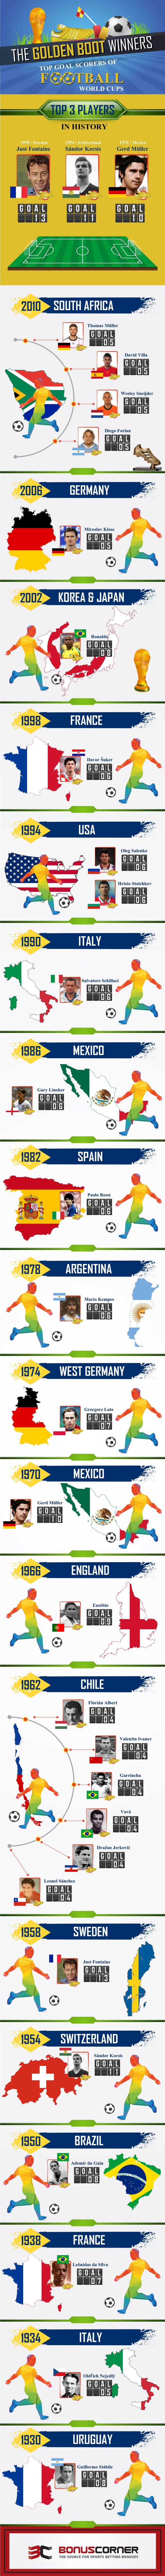 All Fifa Golden Boot Winners In World Cup History Infographic Infographic World Cup History Infographic